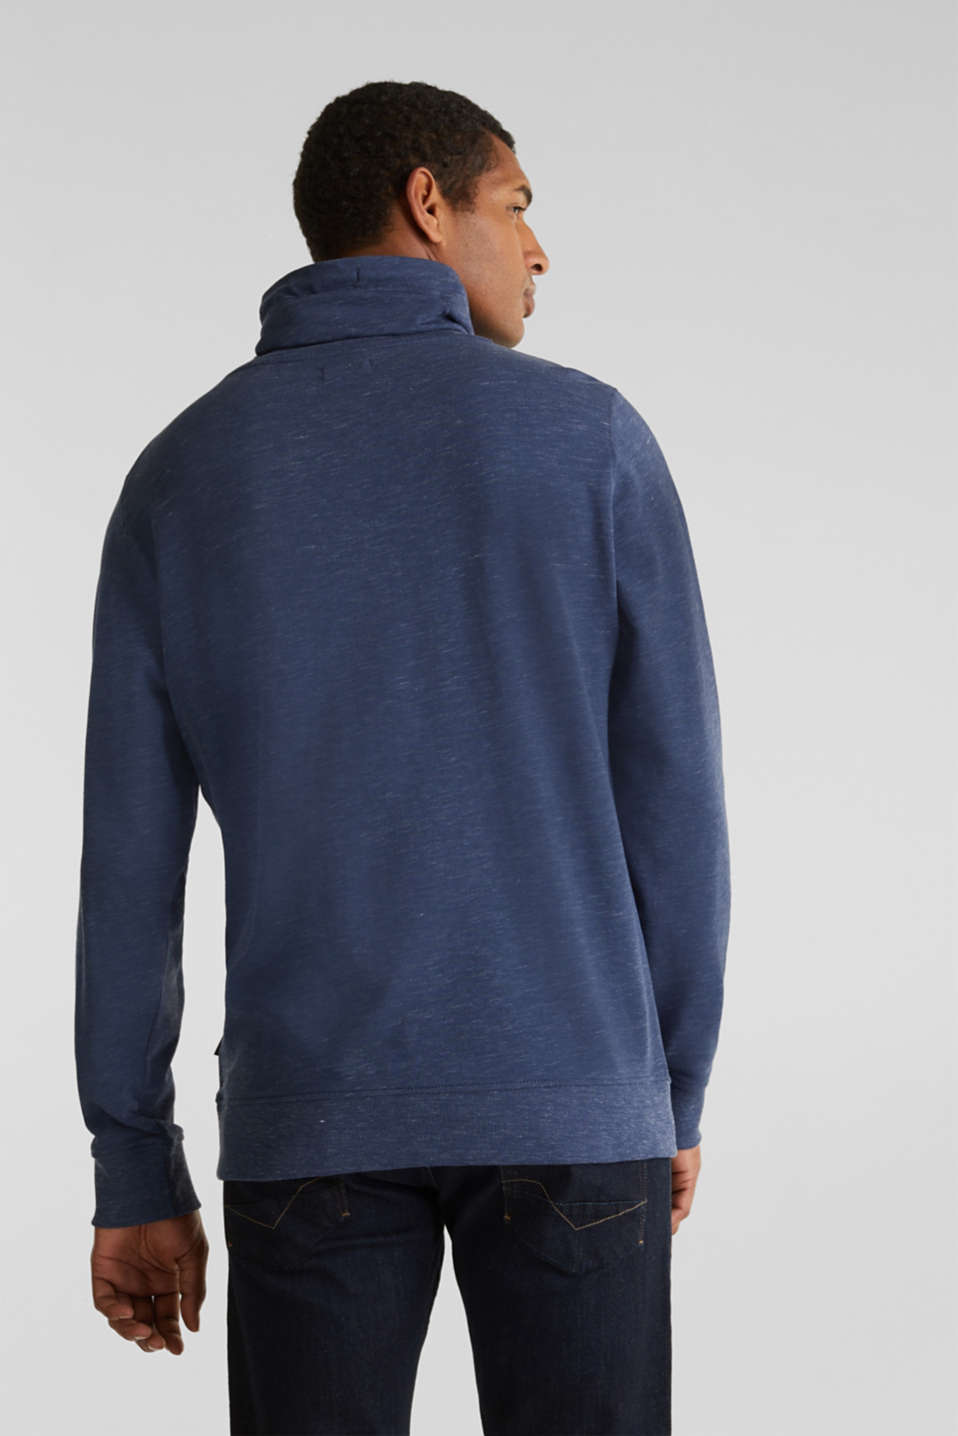 Sweatshirt with a two-tone drawstring collar, NAVY 5, detail image number 3